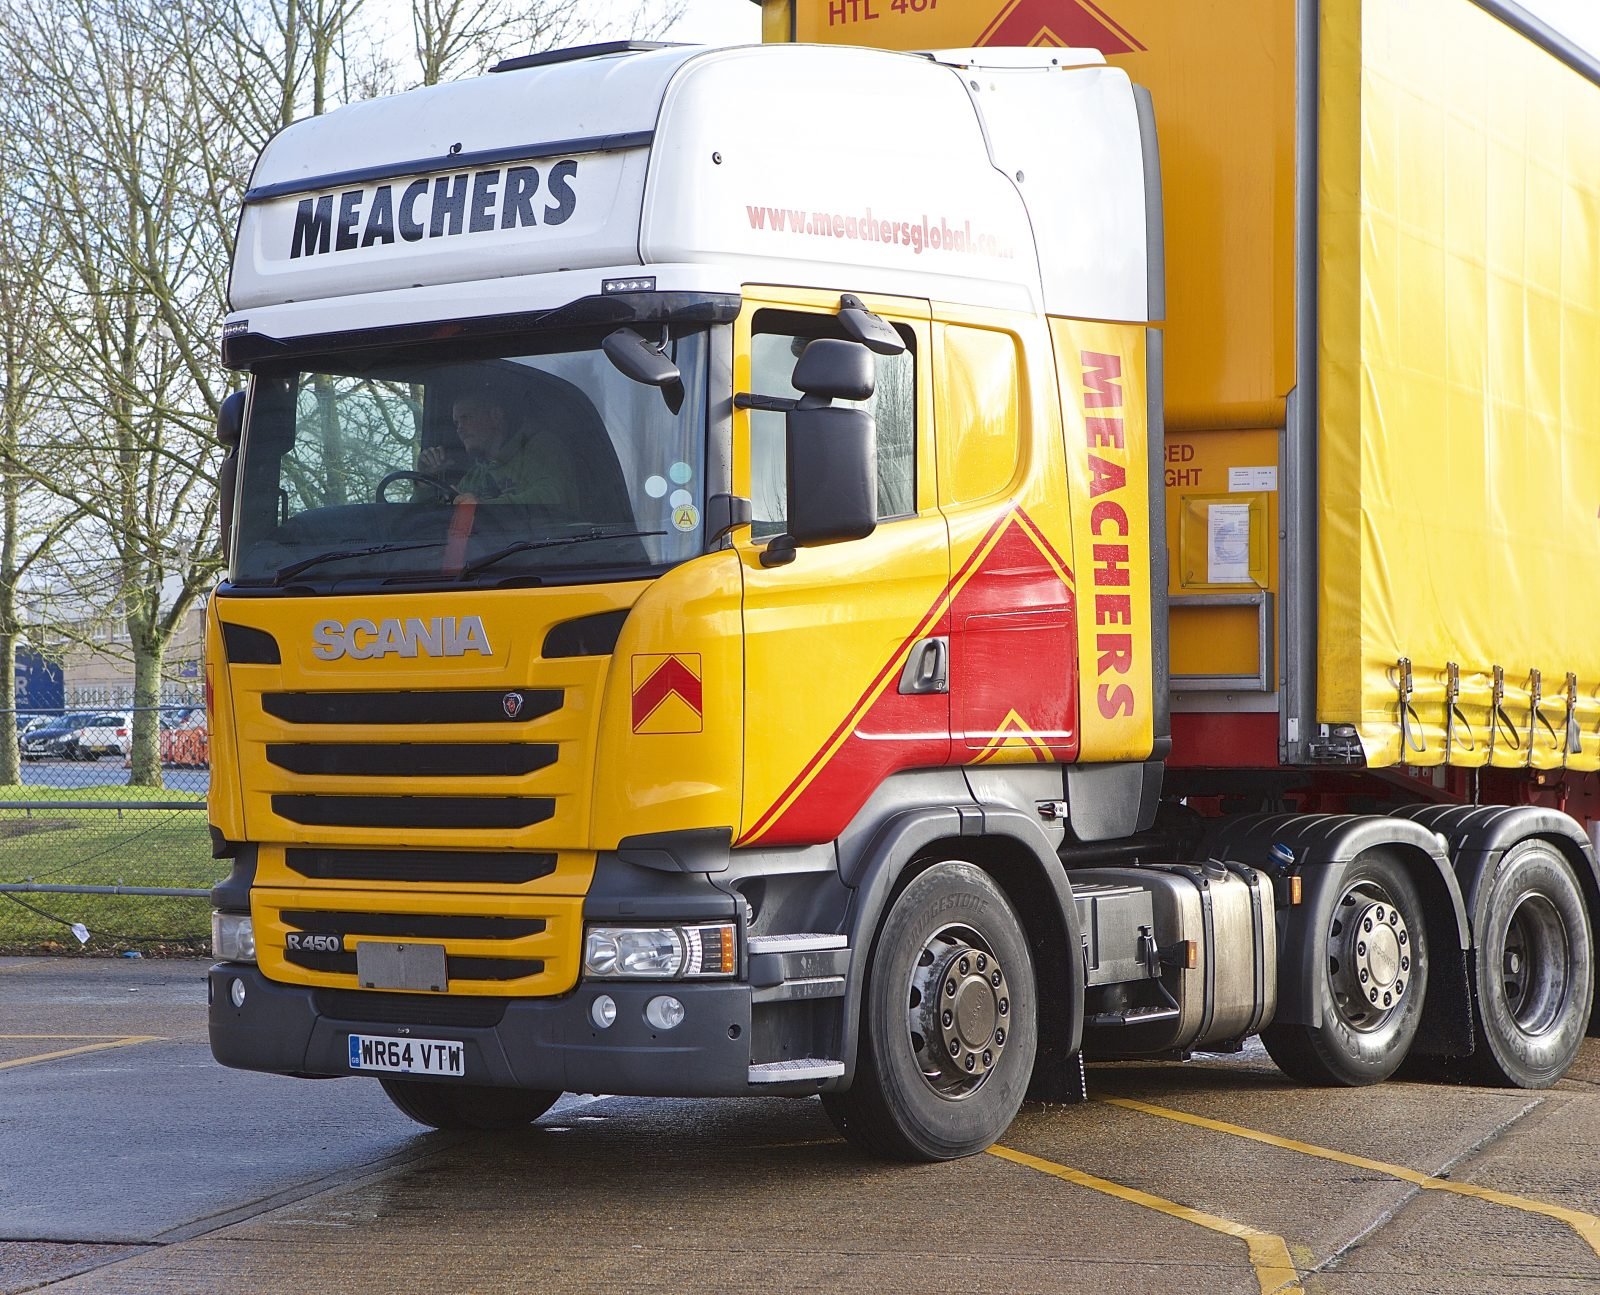 Meachers Global Logistics lorry transporting palletts